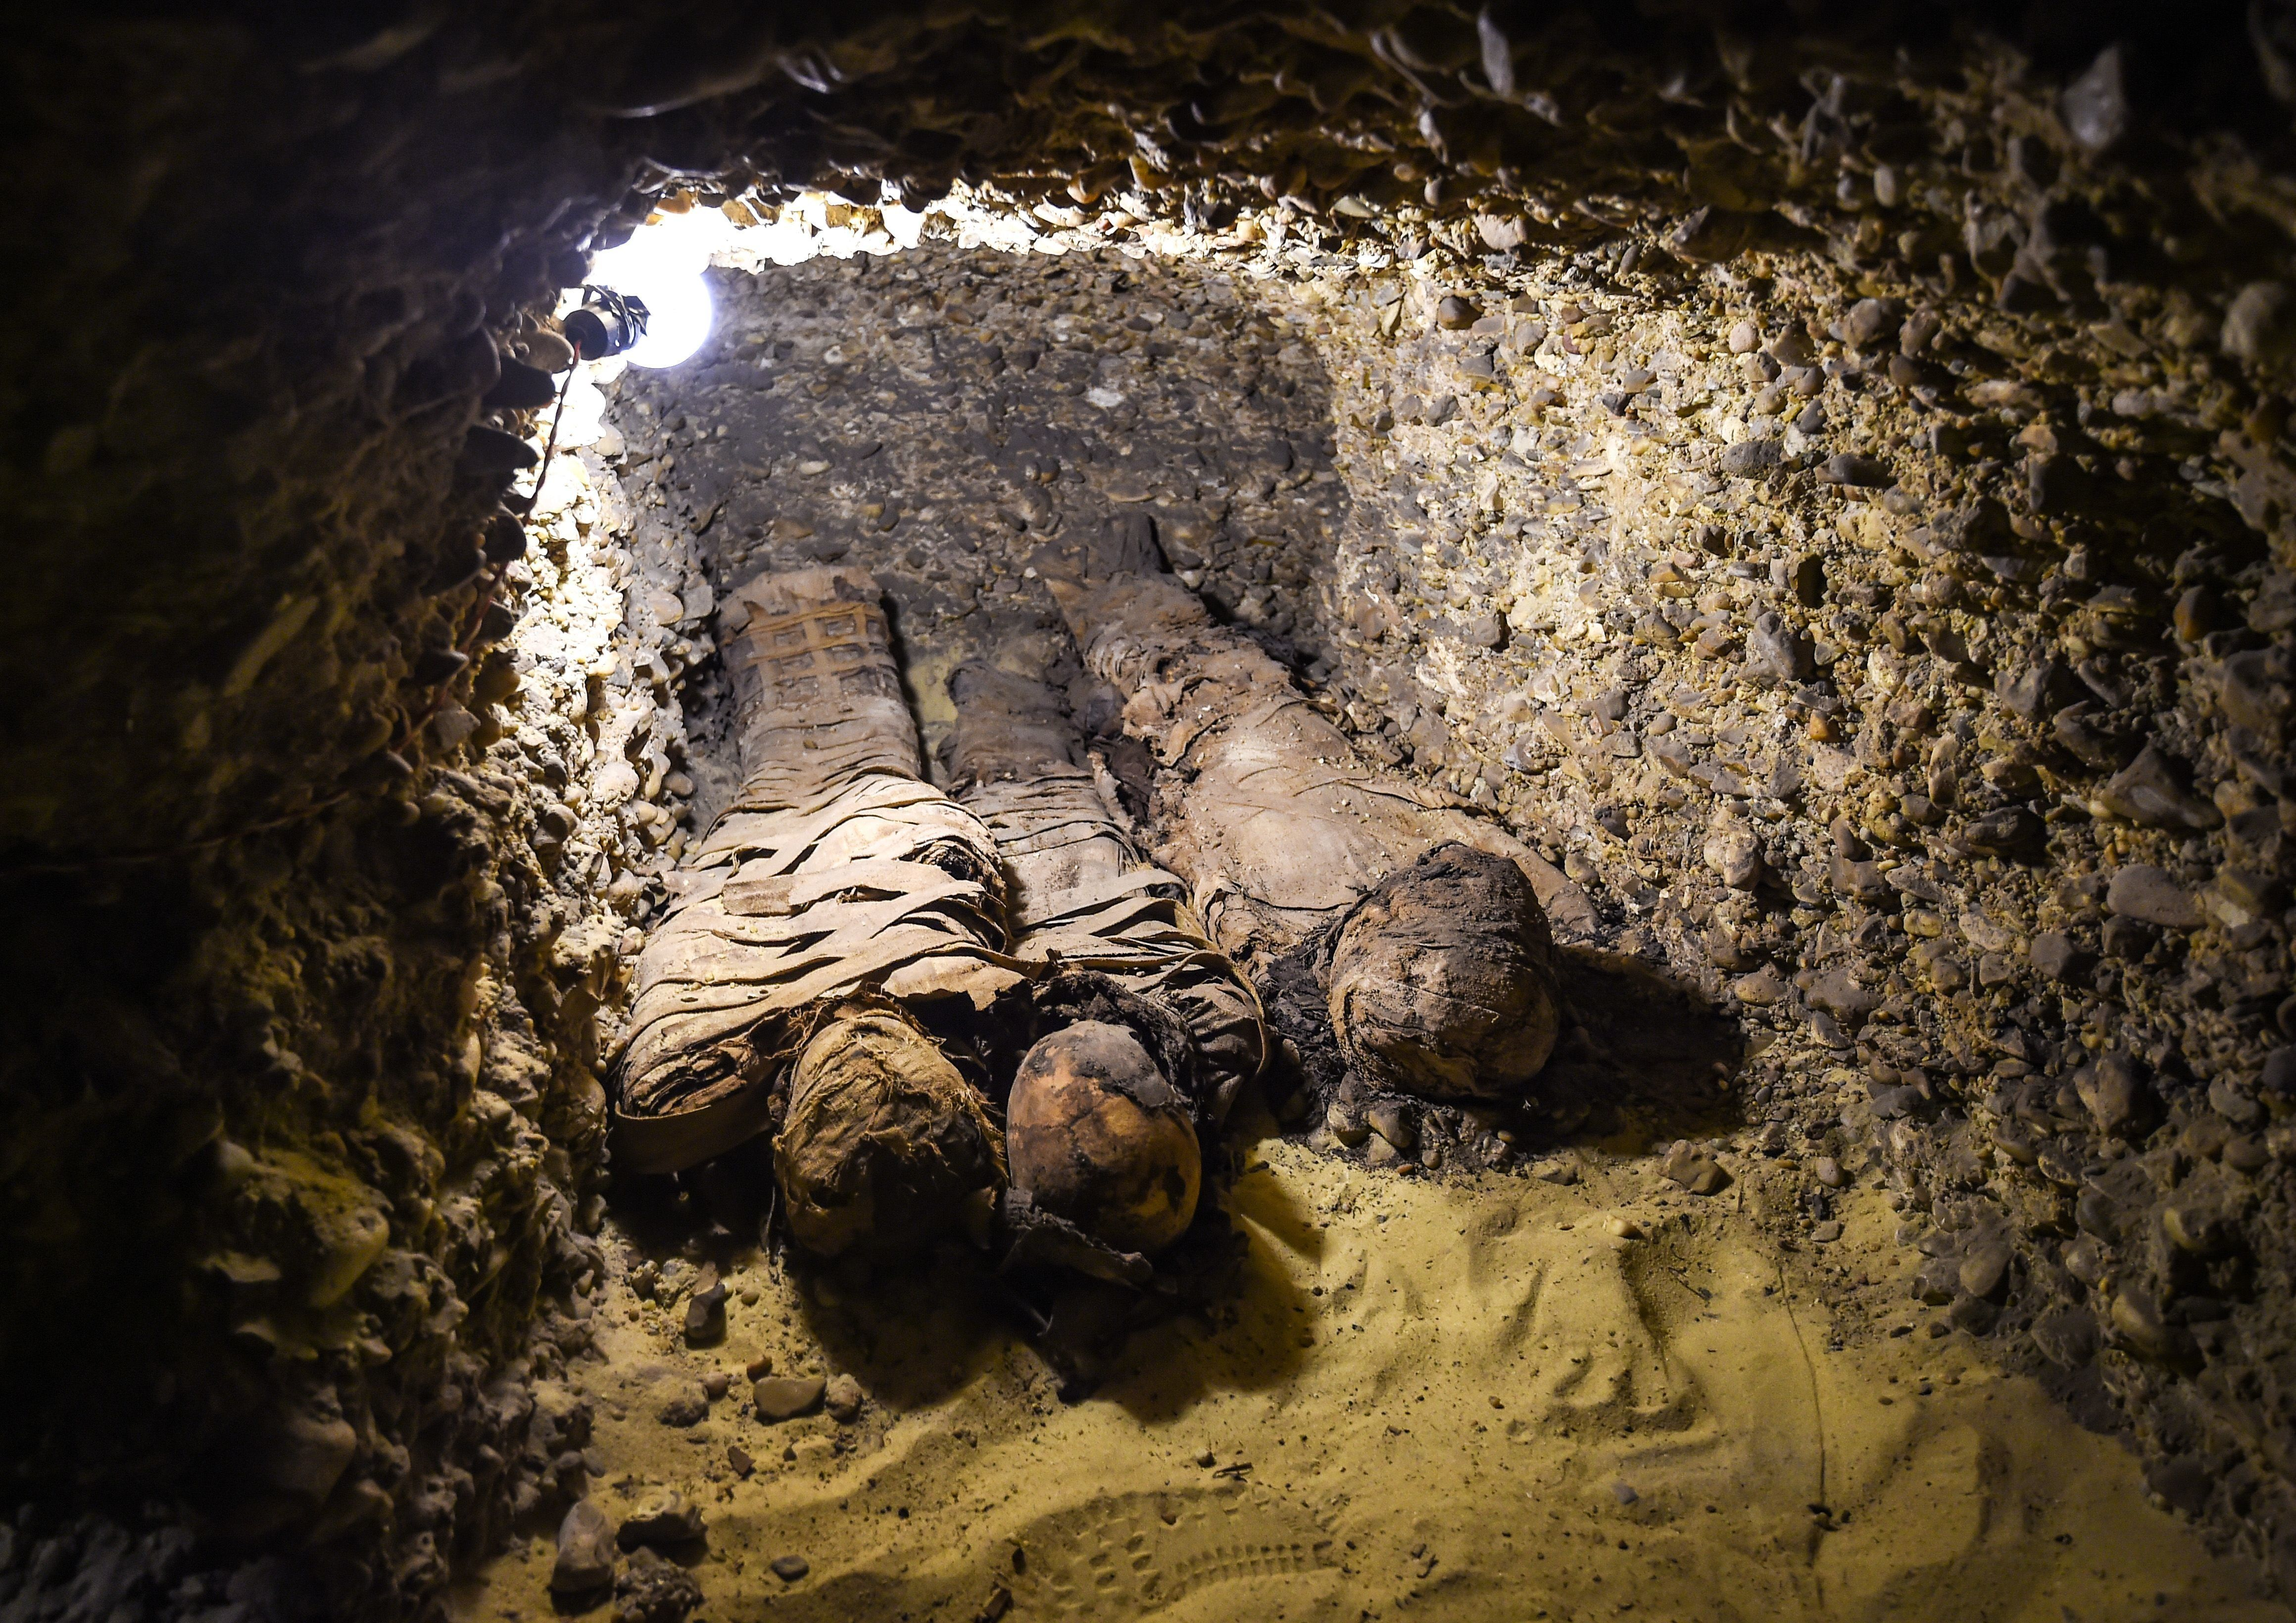 This picture taken on February 2, 2019 shows newly-discovered mummies wrapped in linen found in burial chambers dating to the Ptolemaic era (323-30 BC) at the necropolis of Tuna el-Gebel in Egypt's southern Minya province, about 340 kilometres south of the capital Cairo. - Egypt's Antiquities Minister said on February 2 that a joint mission from the ministry and Minya University's Archaeological Studies Research Centre found upon a collection of Ptolemaic burial chambers engraved in rock and filled with a large number of mummies of different sizes and genders. The minister added that the newly discovered tombs may be a familial grave for a family from the elite middle class. (Photo by MOHAMED EL-SHAHED / AFP)        (Photo credit should read MOHAMED EL-SHAHED/AFP/Getty Images)